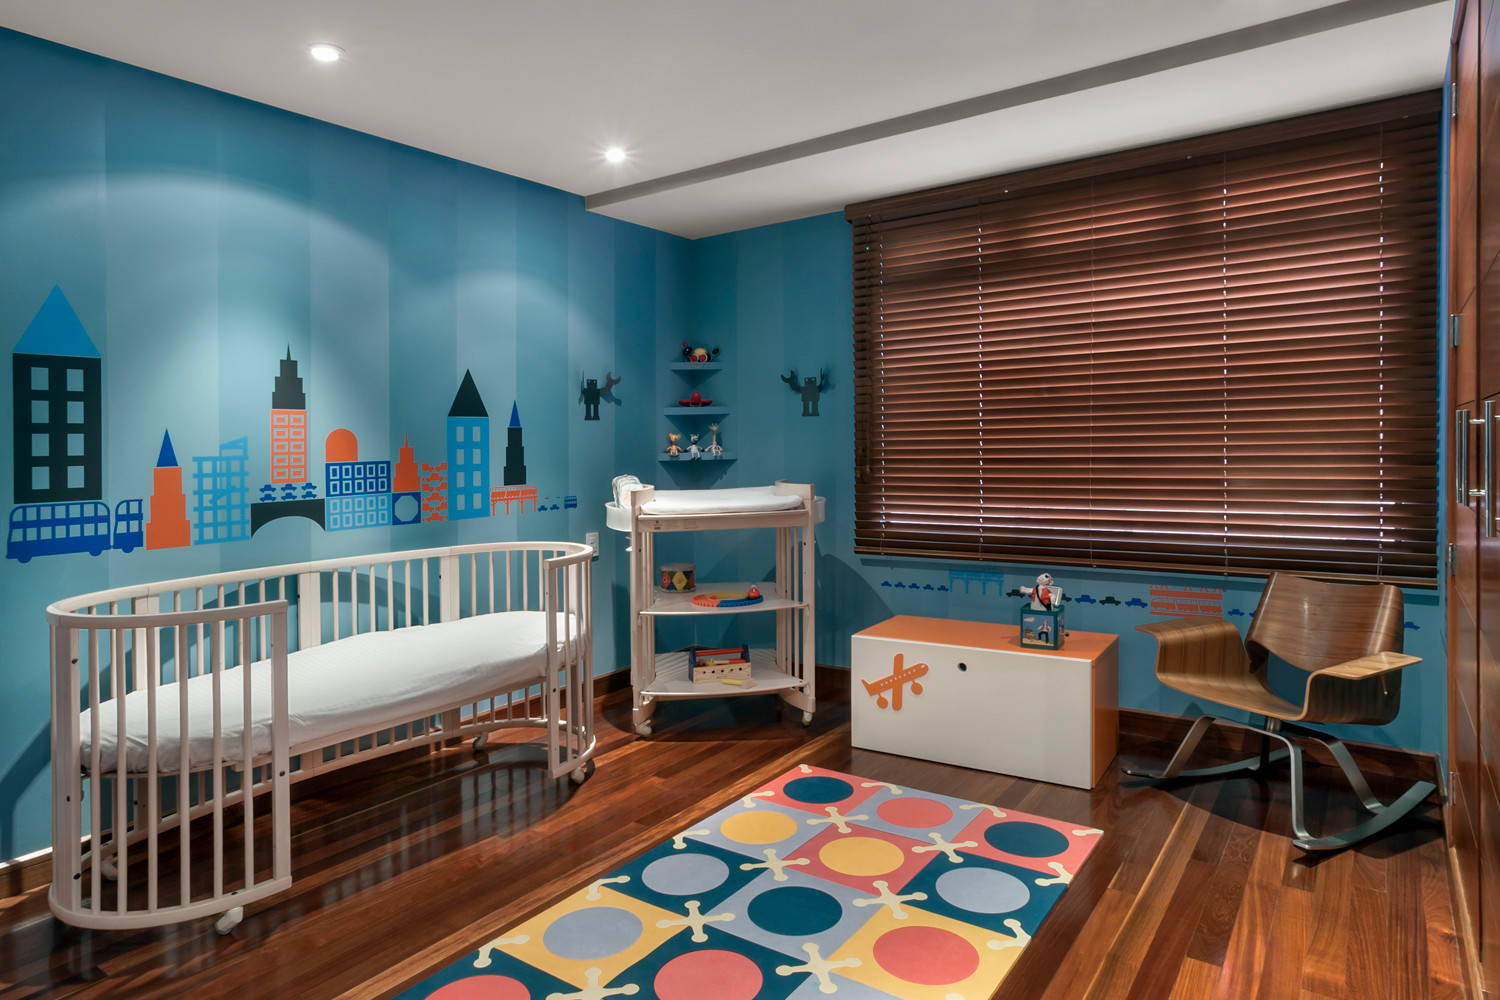 Fun rug brings pattern and color to the stylish kids' nursery